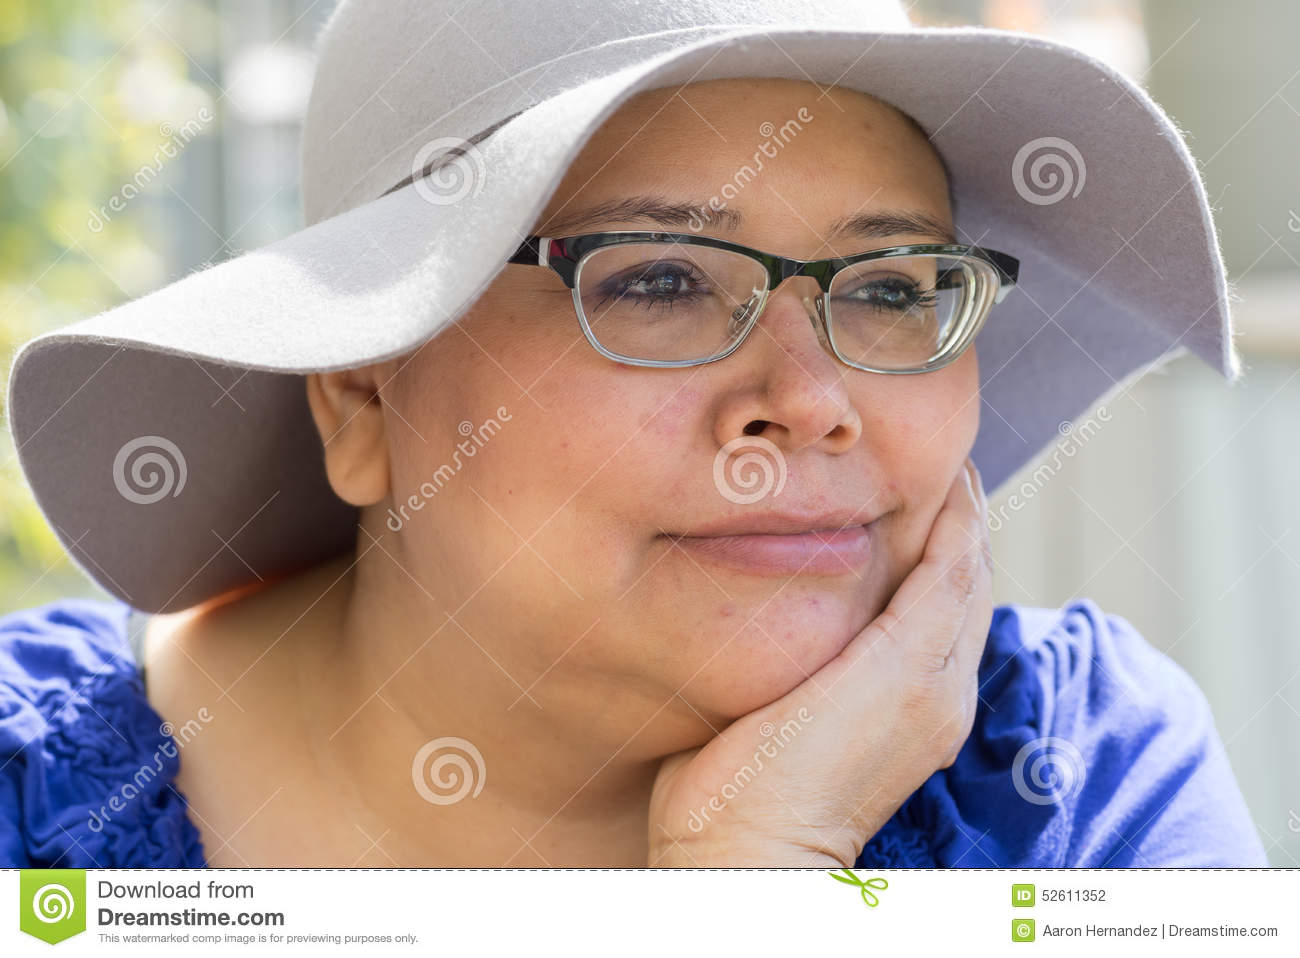 20e5cfc15b3 Cancer Patient Wears Hat For Sun Protection Stock Photo - Image of ...